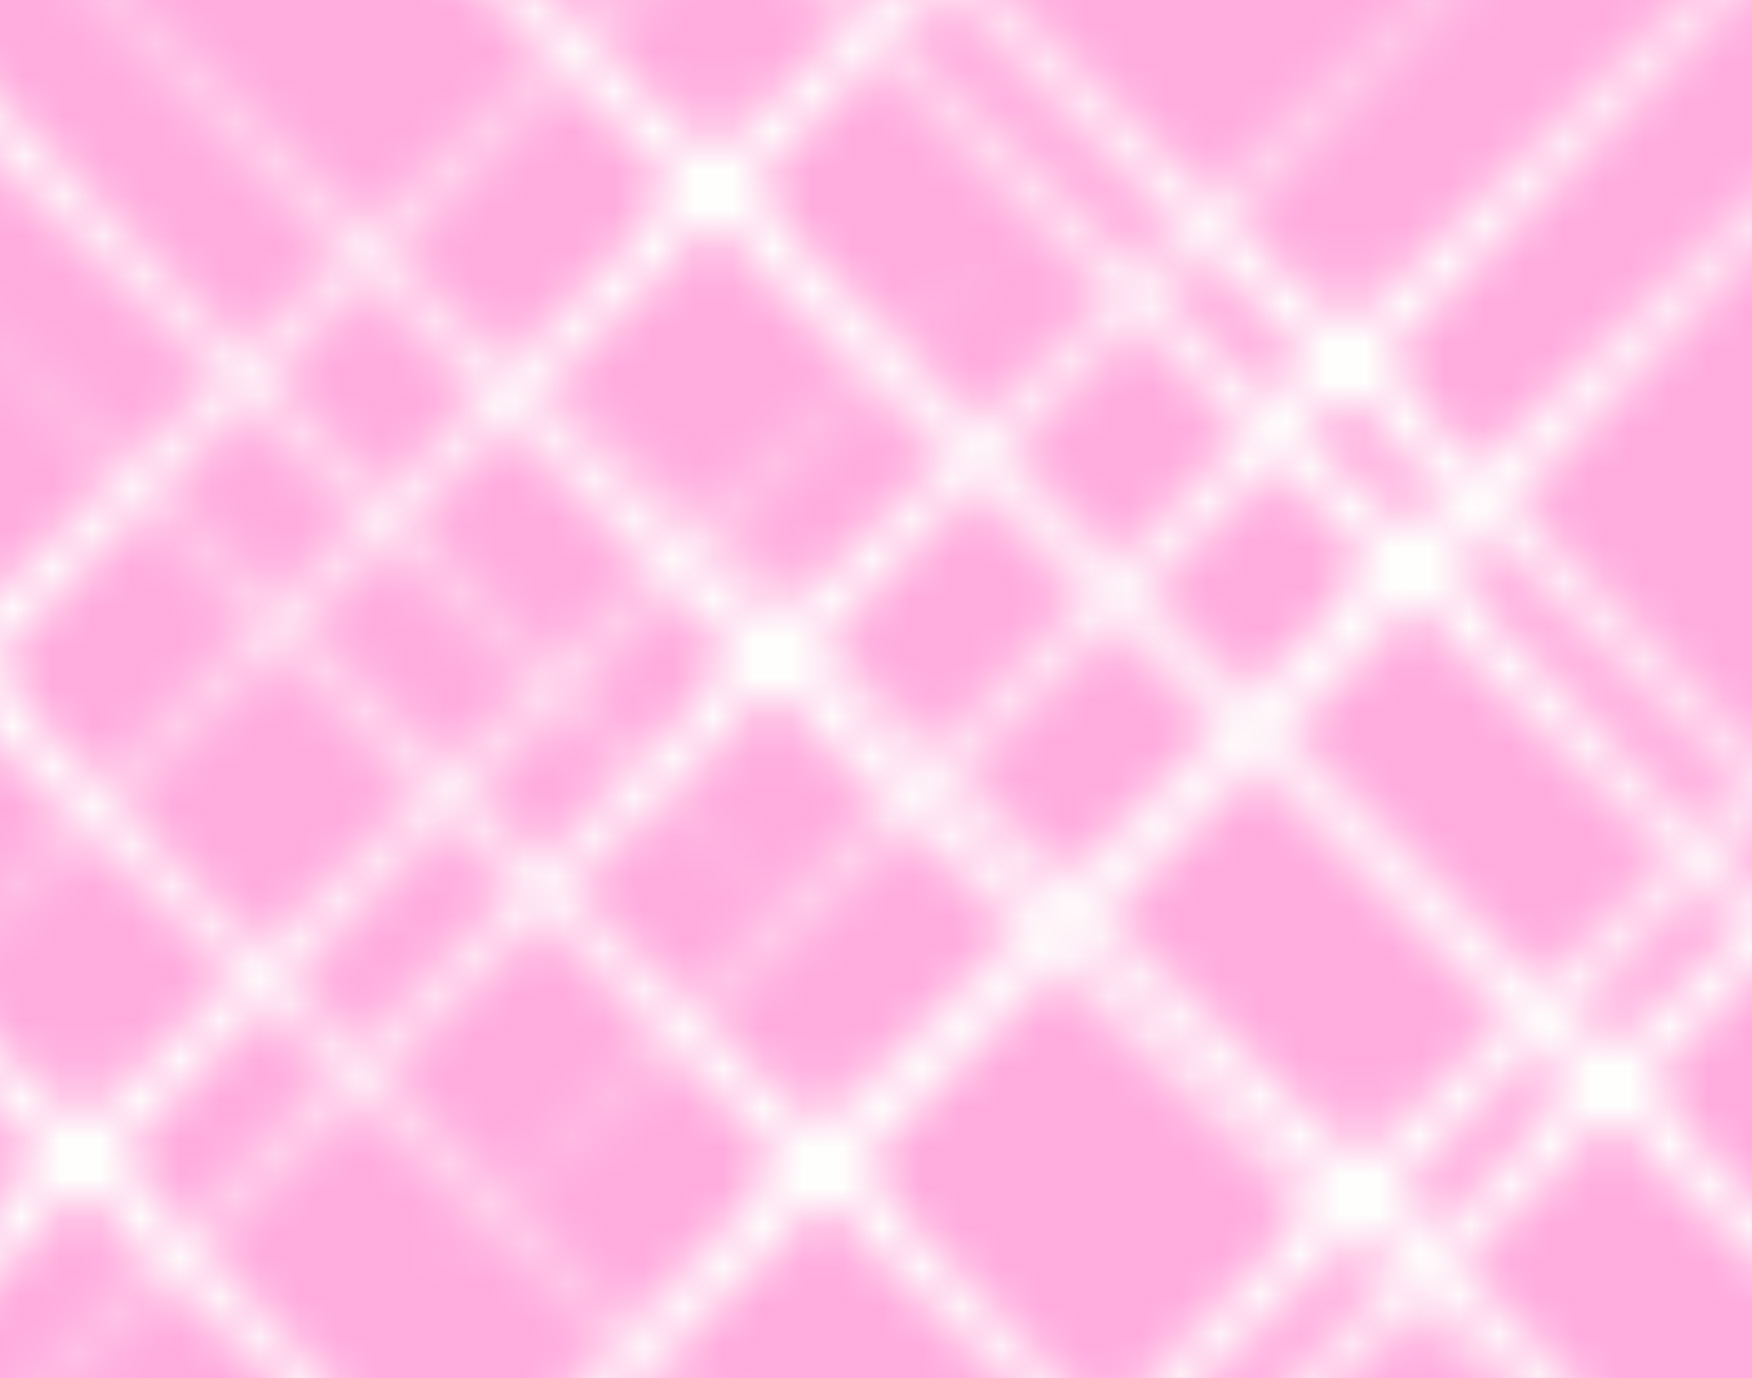 Pink White Pattern Design Patterns